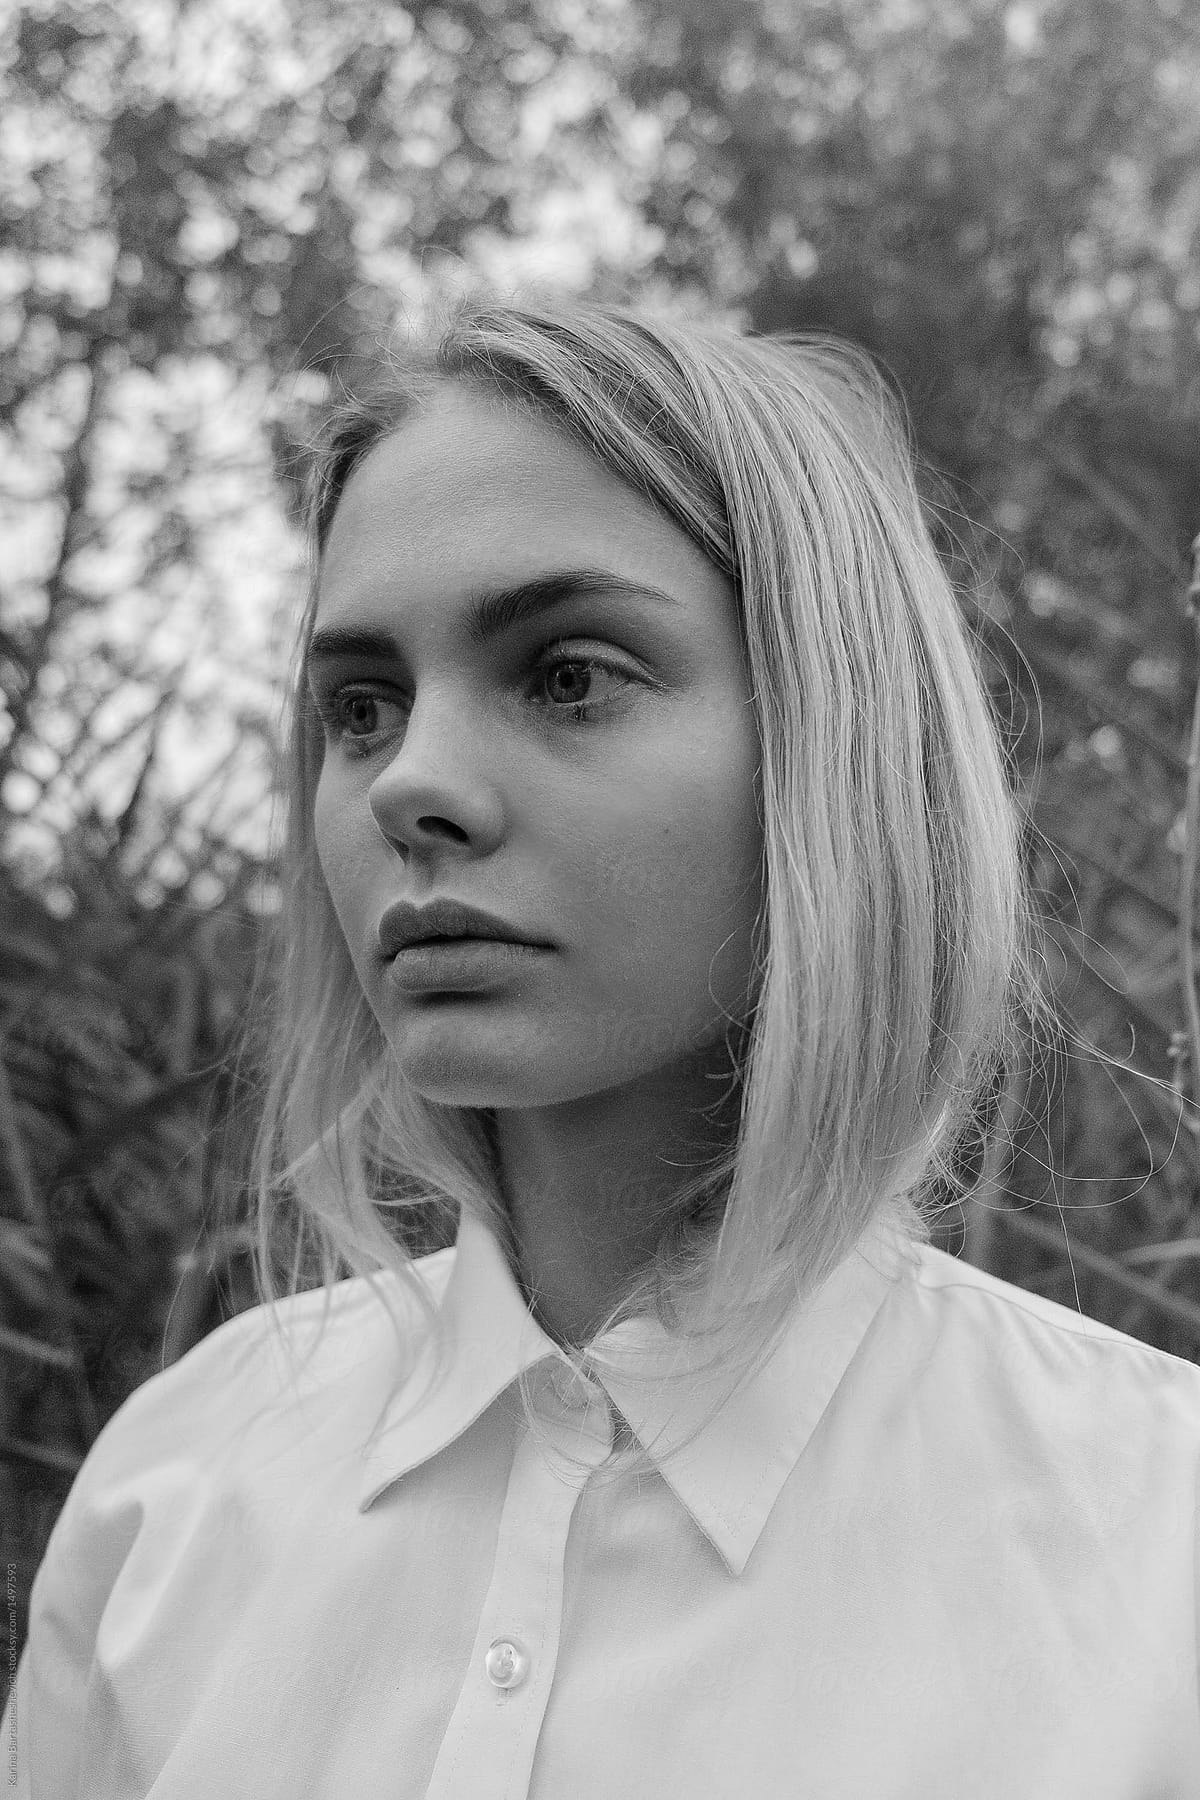 Black and white portrait of a beautiful sad blonde girl in white shirt on a background of bushes